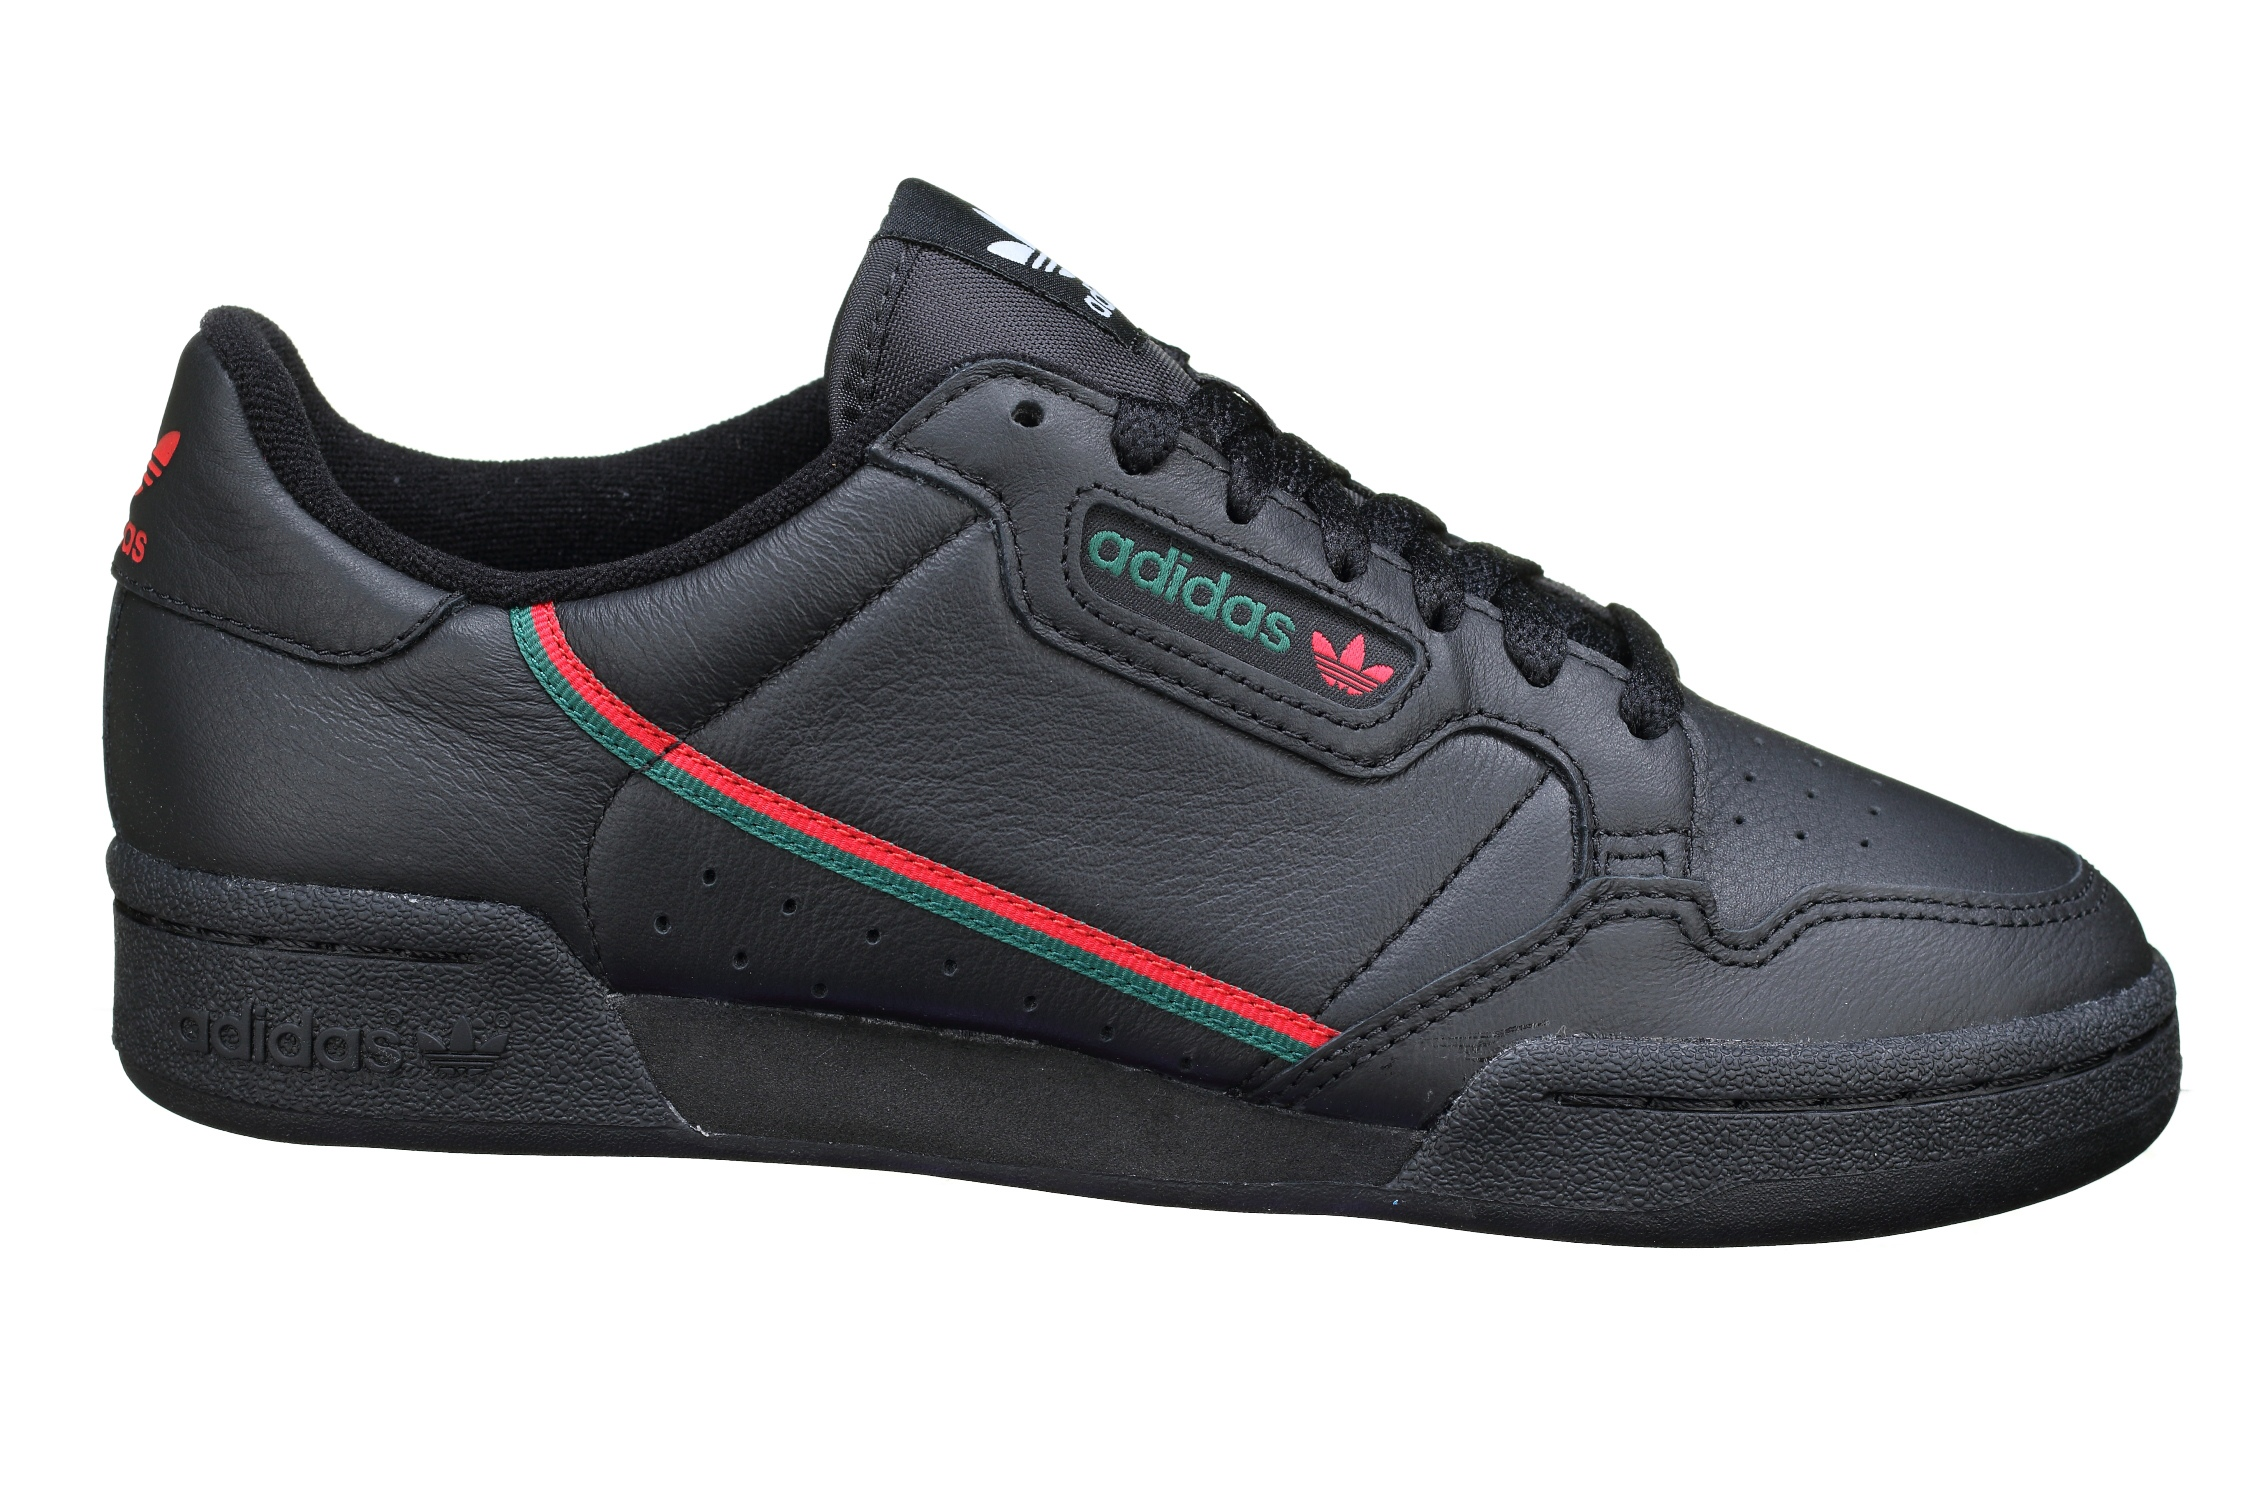 https://www.leadermode.com/174954/adidas-continental-80-ee5343-black.jpg